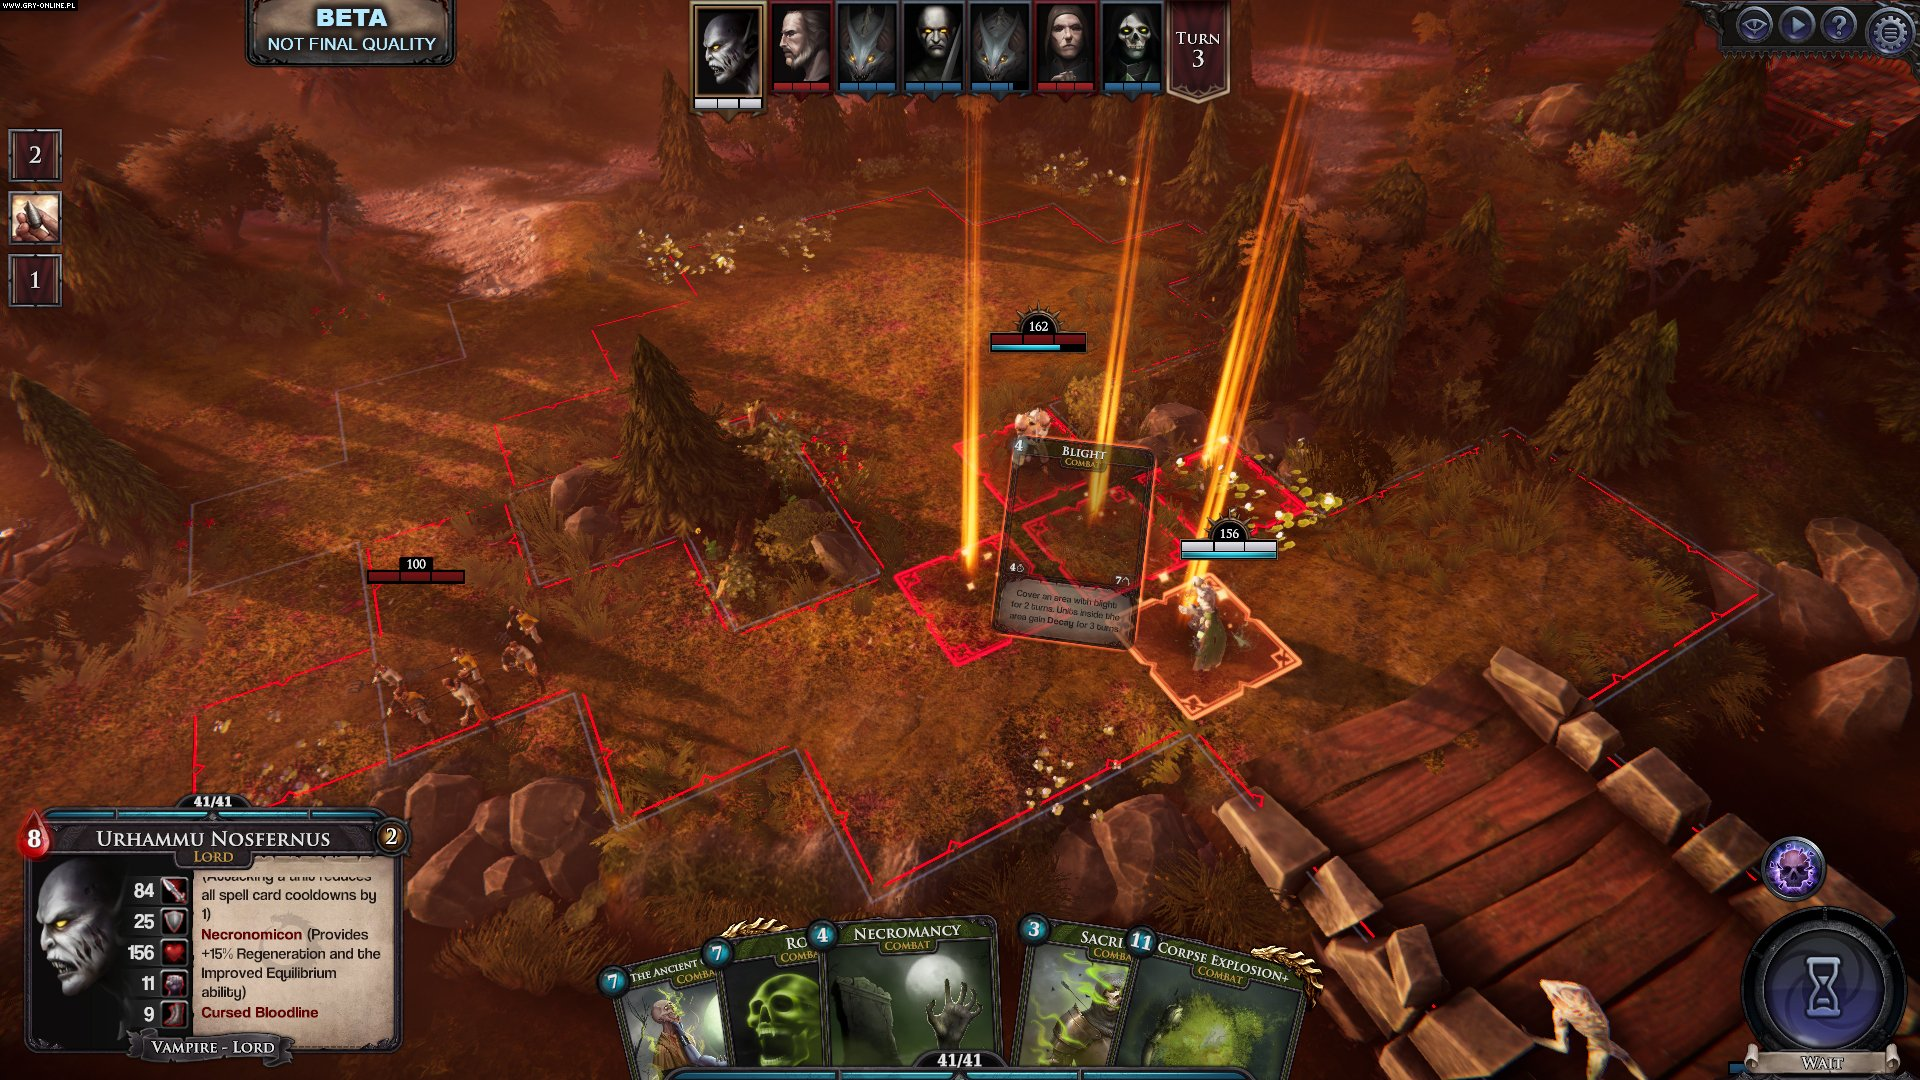 Immortal Realms: Vampire Wars PC, PS4, XONE, Switch Games Image 5/17, Palindrome Interactive, Kalypso Media